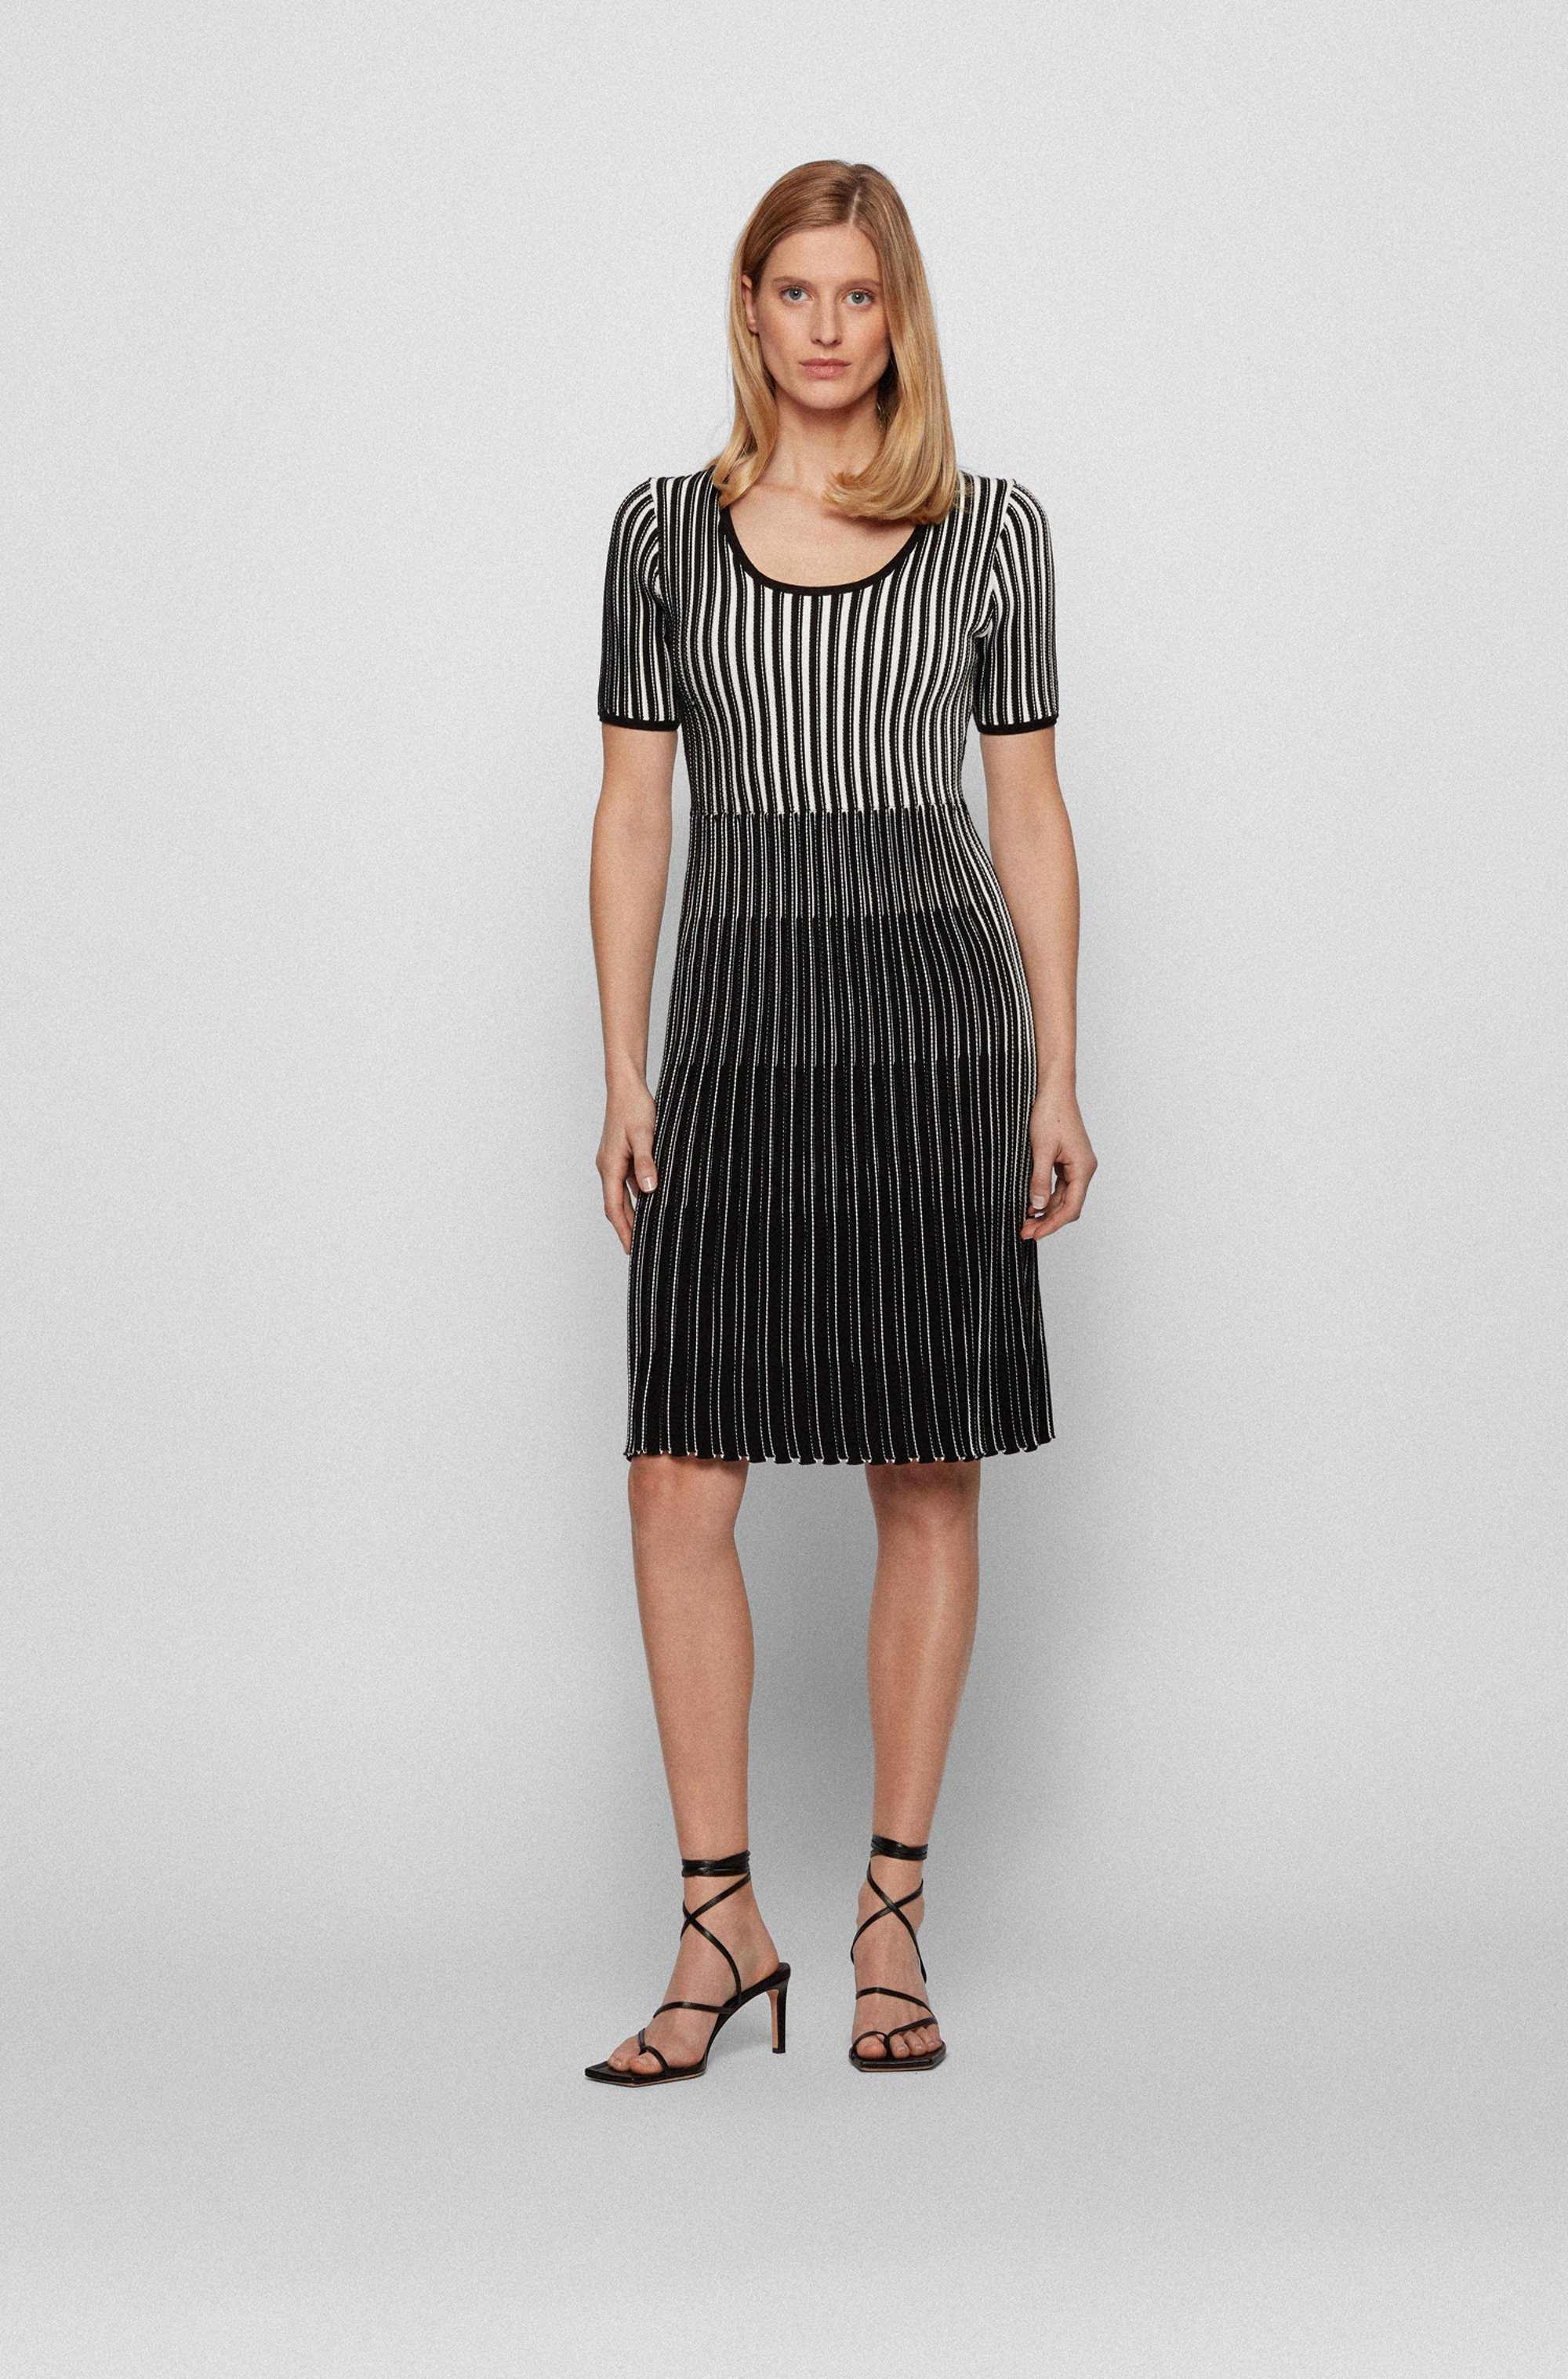 Short-sleeved knitted dress in mixed structures